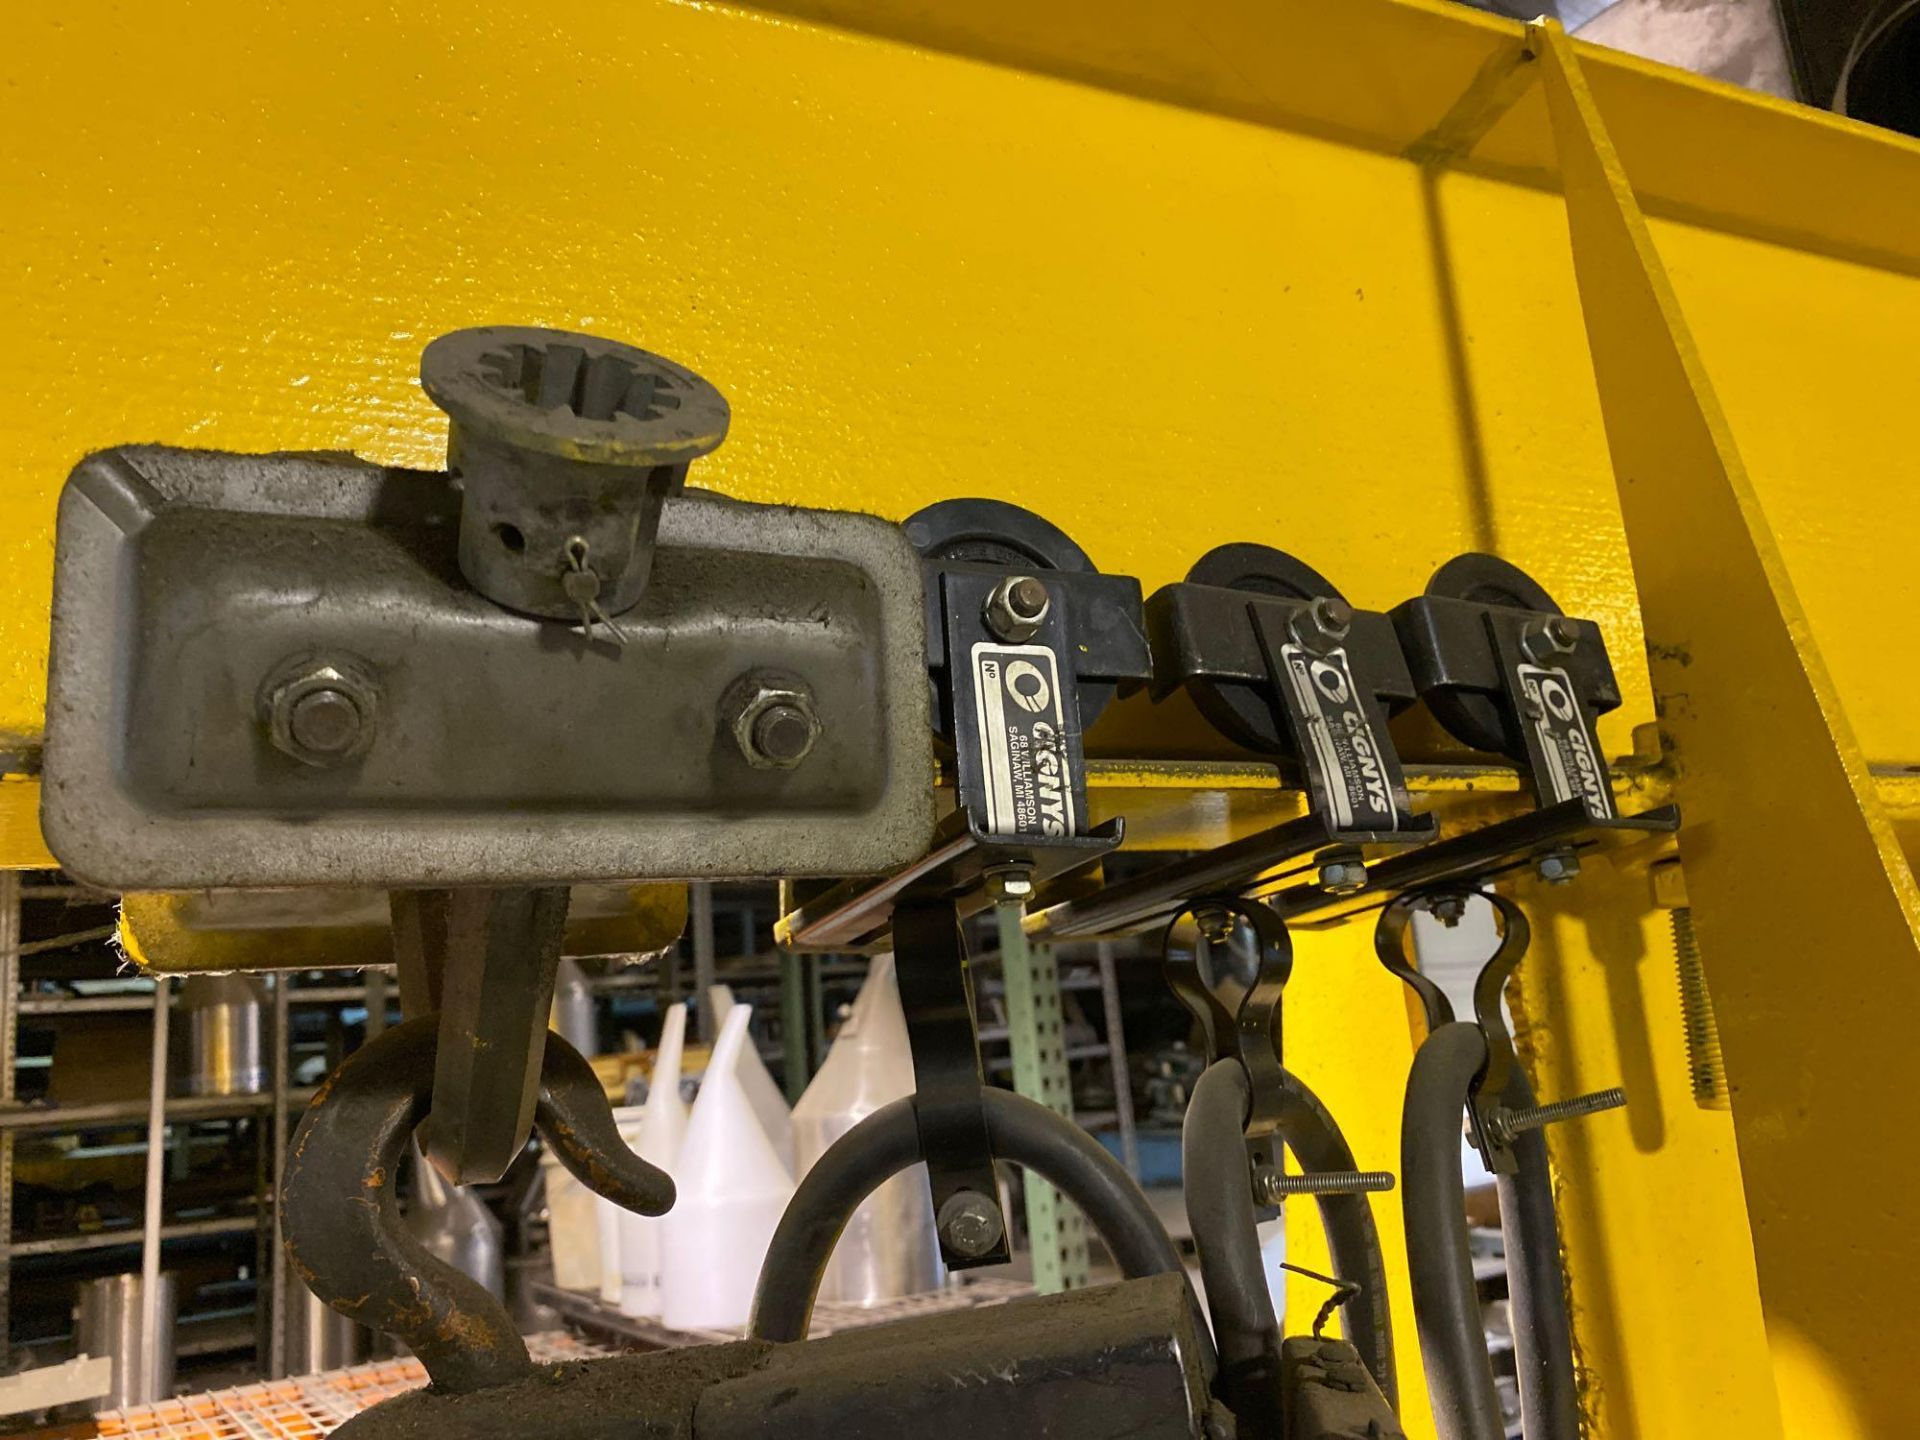 Over Head Jib Crane with Shannon Hoist and Yale Pulley System - Image 8 of 13